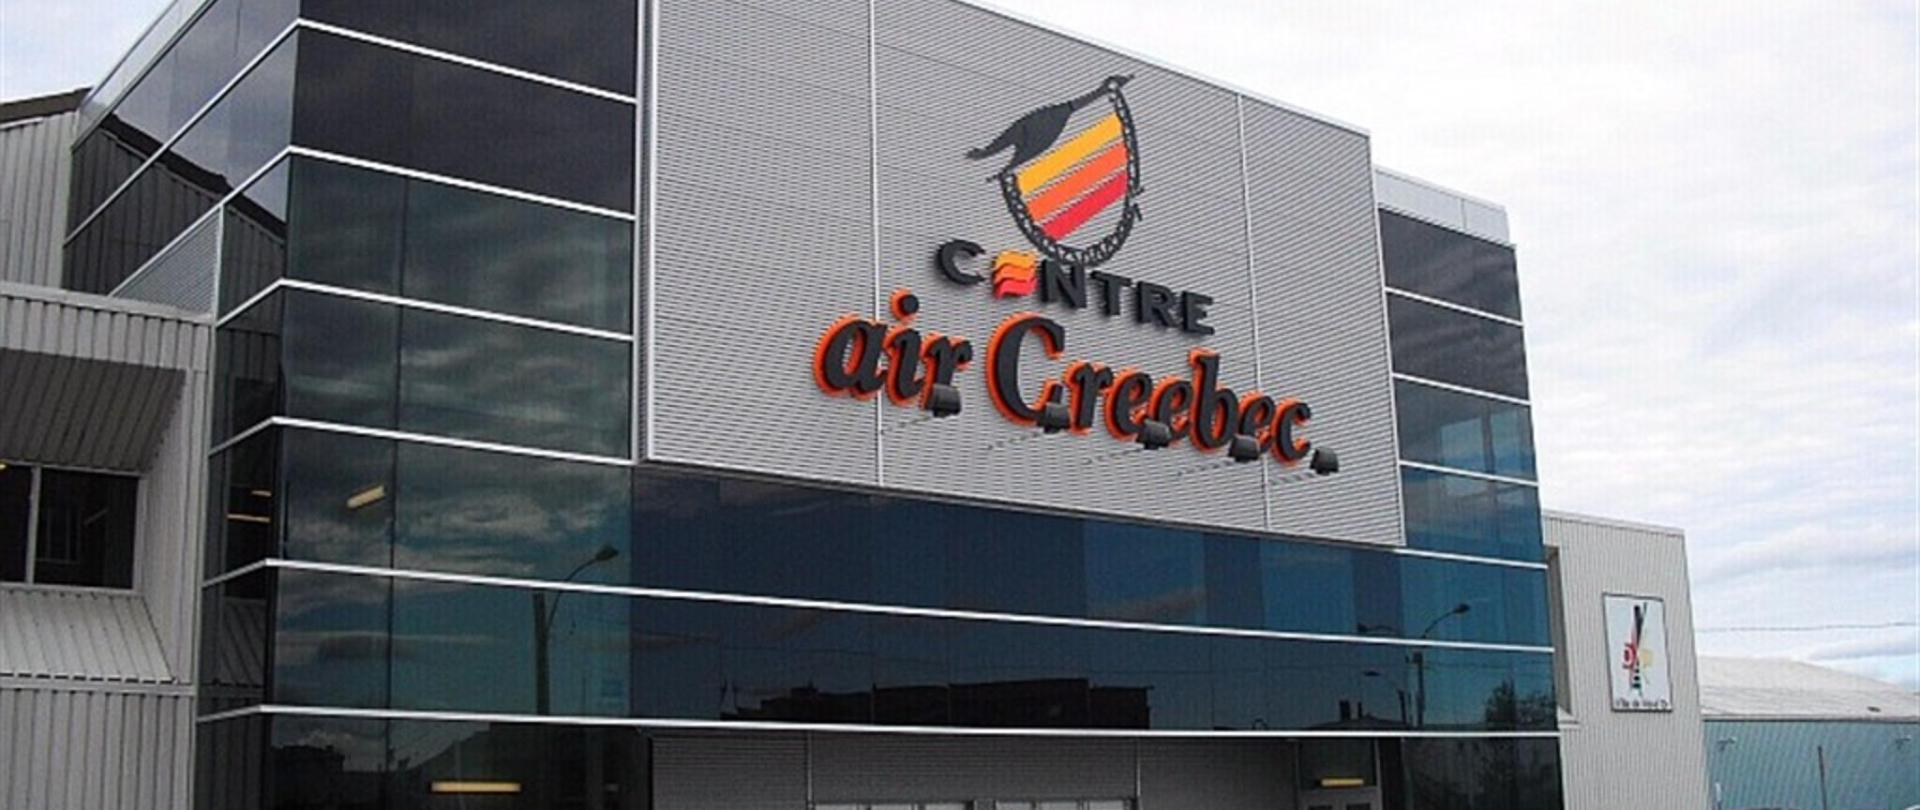 centre-air-creebec-et-arena.jpg.1024x0.jpg